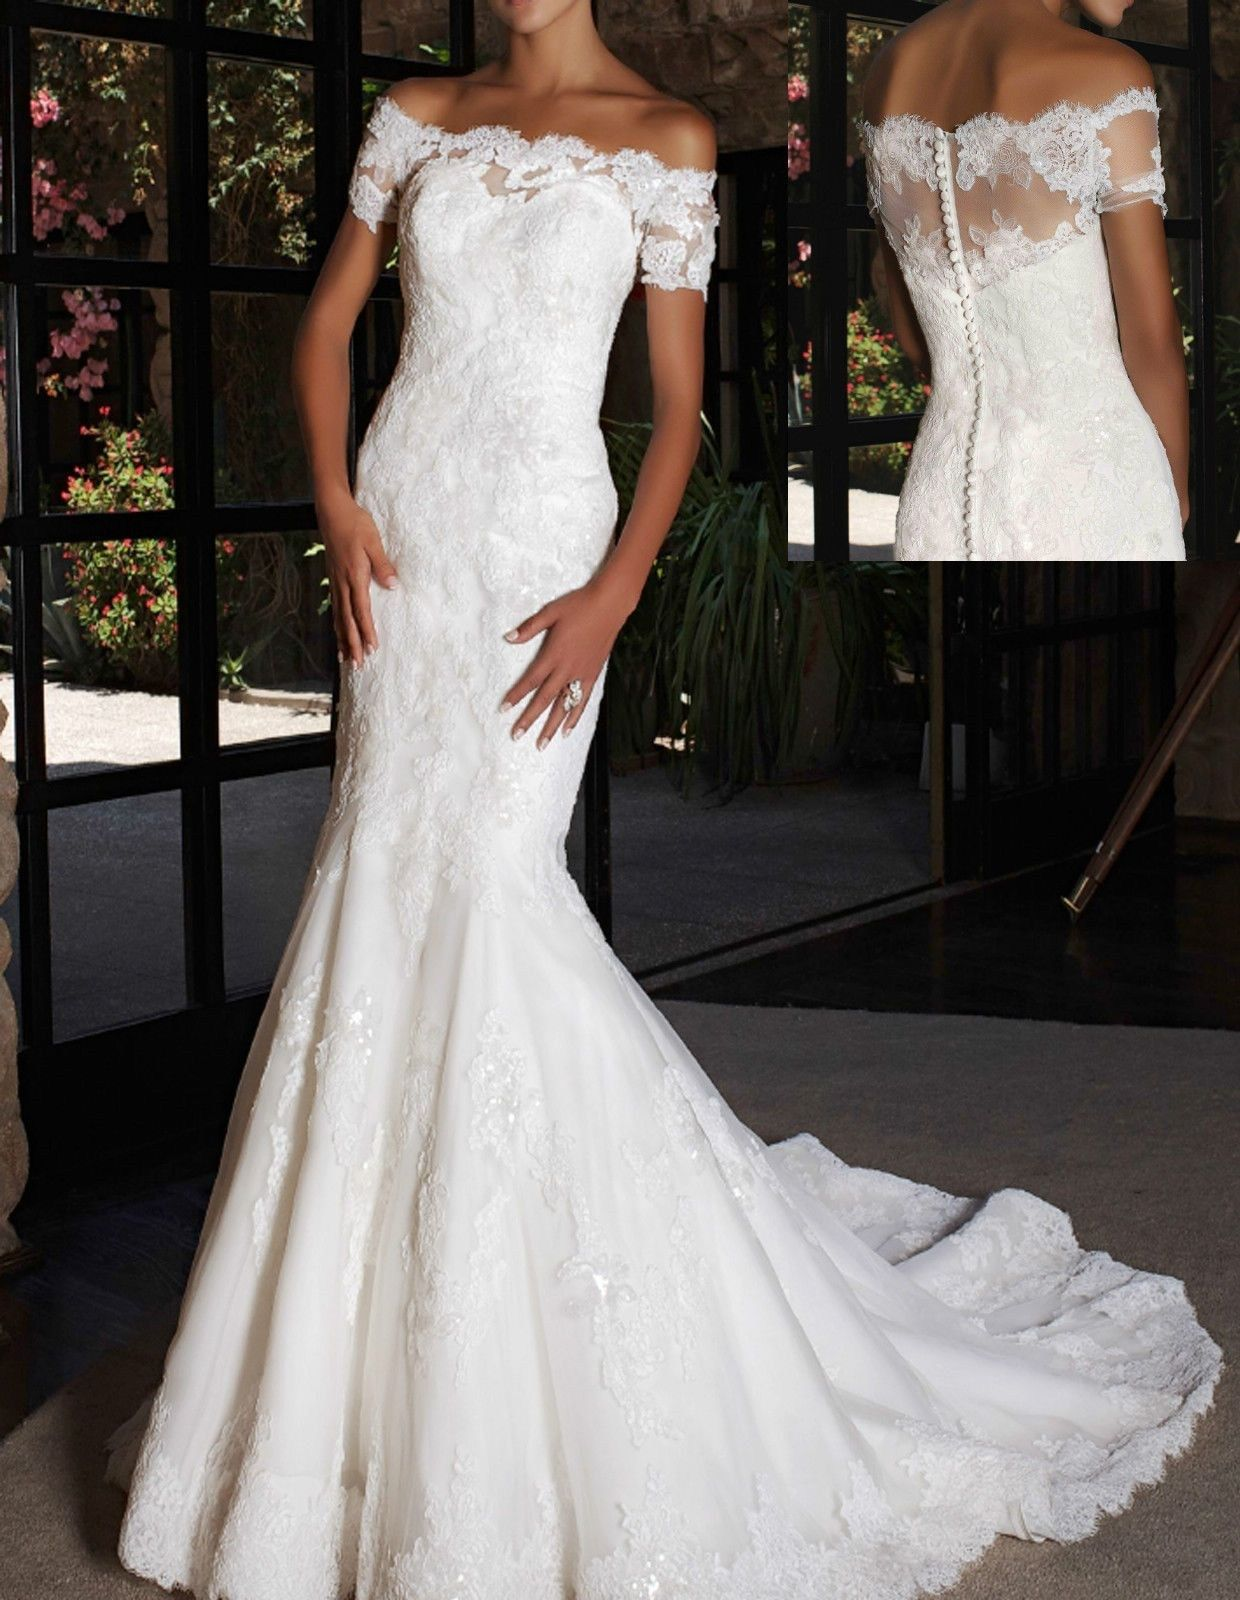 50+ Short sleeve lace wedding gown ideas